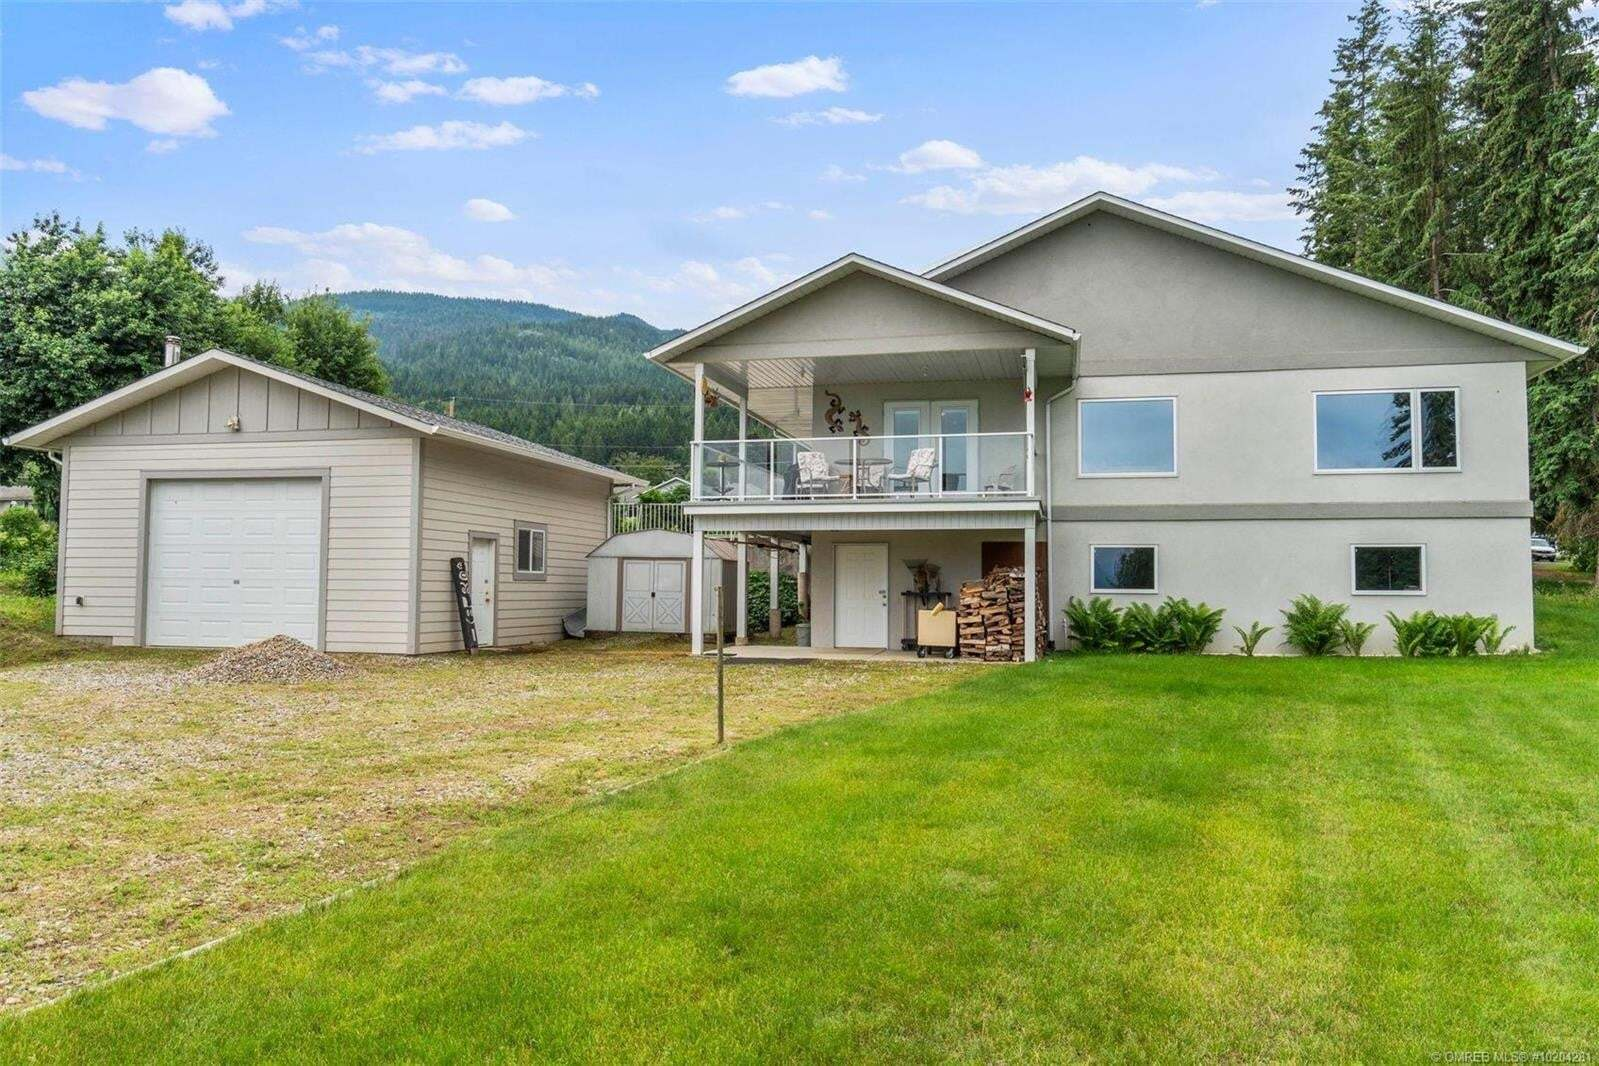 House for sale at 1281 20 Ave Southwest Salmon Arm British Columbia - MLS: 10204281